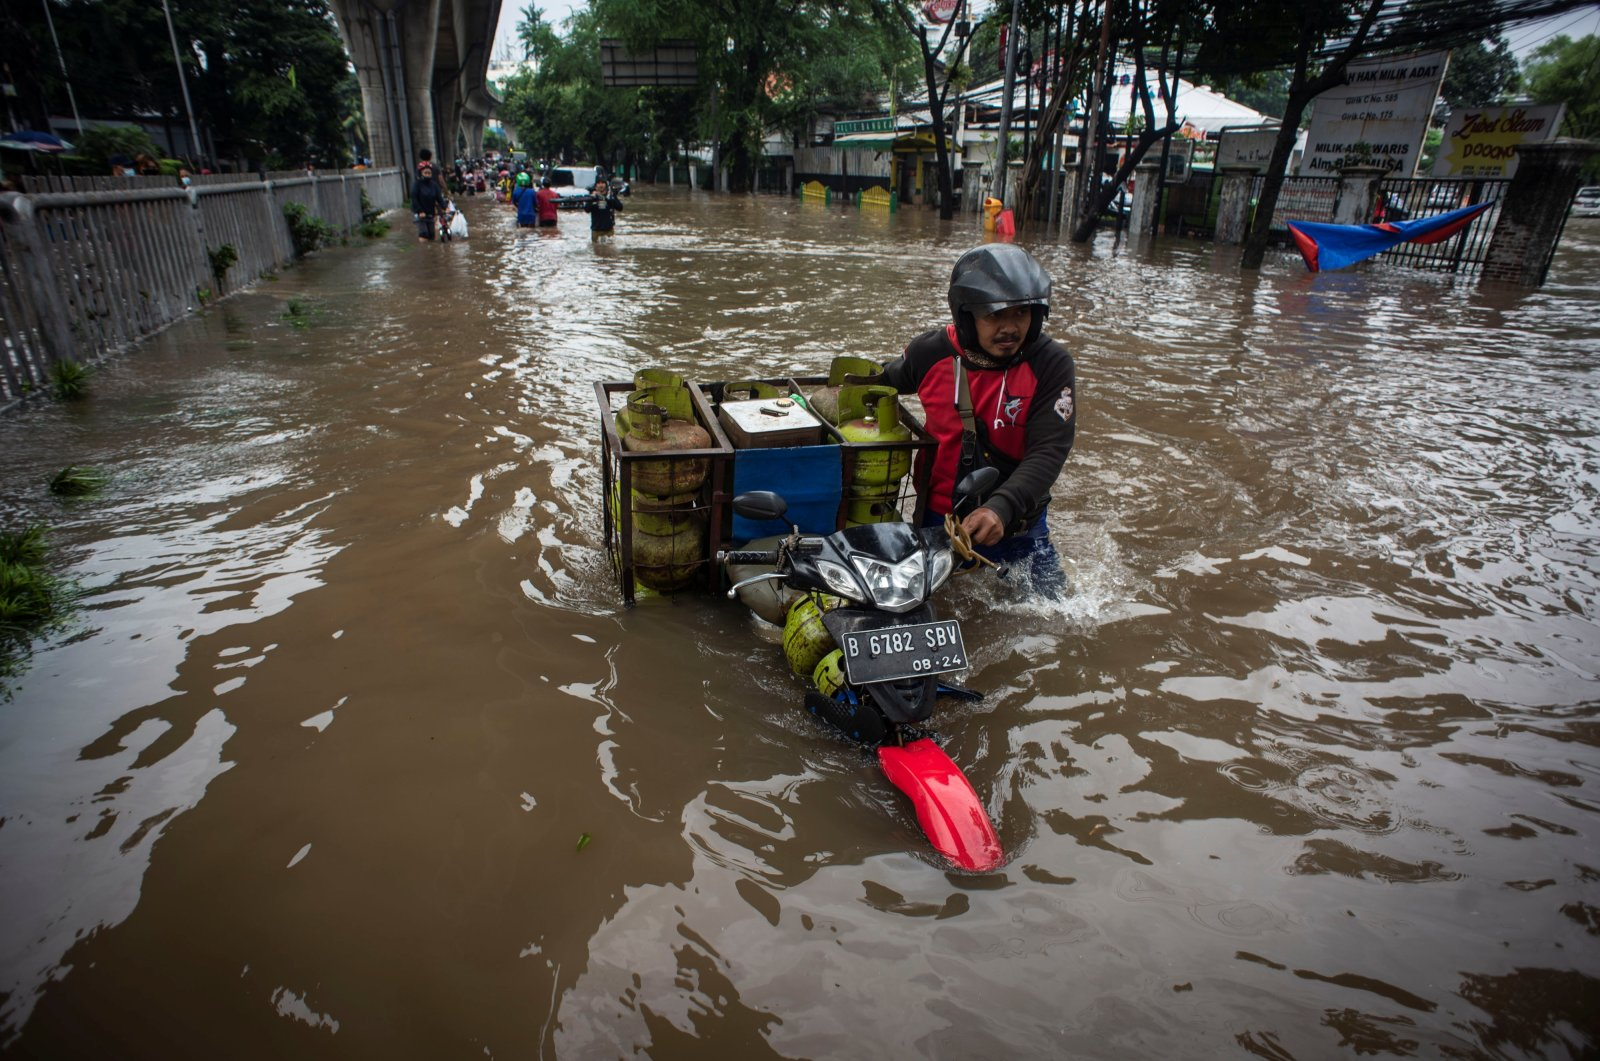 Man pushes his motorbike through water in an area affected by floods following heavy rains in Jakarta, Indonesia, Feb. 20, 2021. (Reuters Photo)